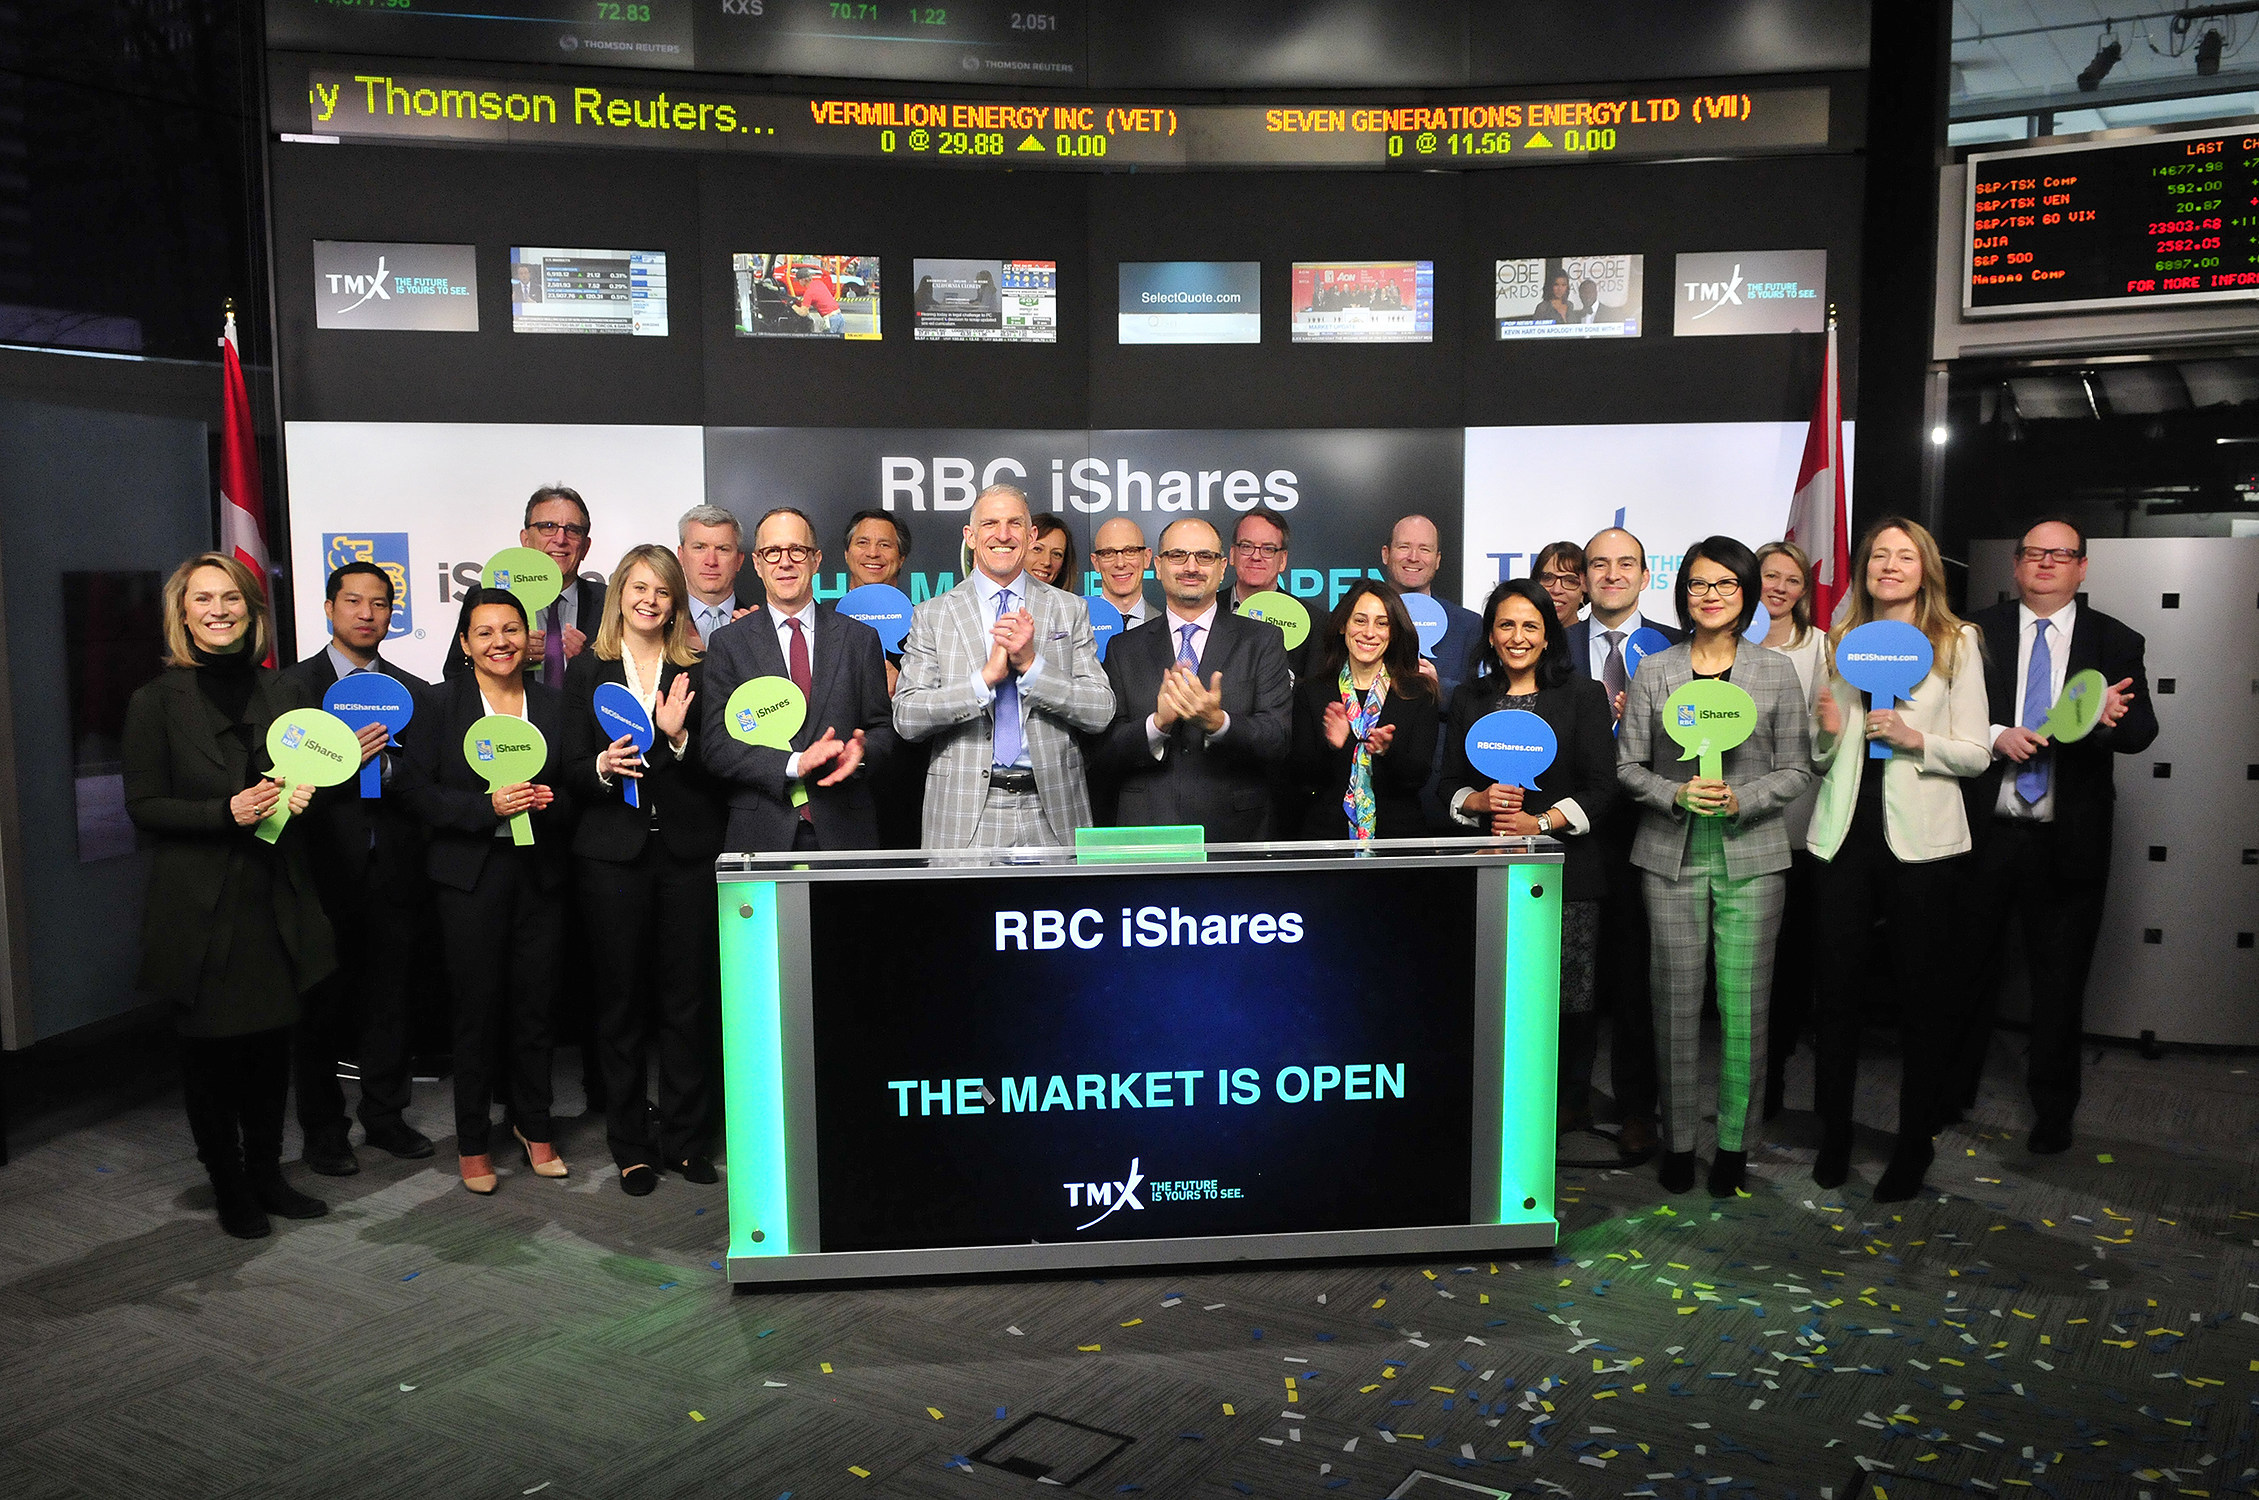 RBC iShares Opens the Market (CNW Group/TMX Group Limited)